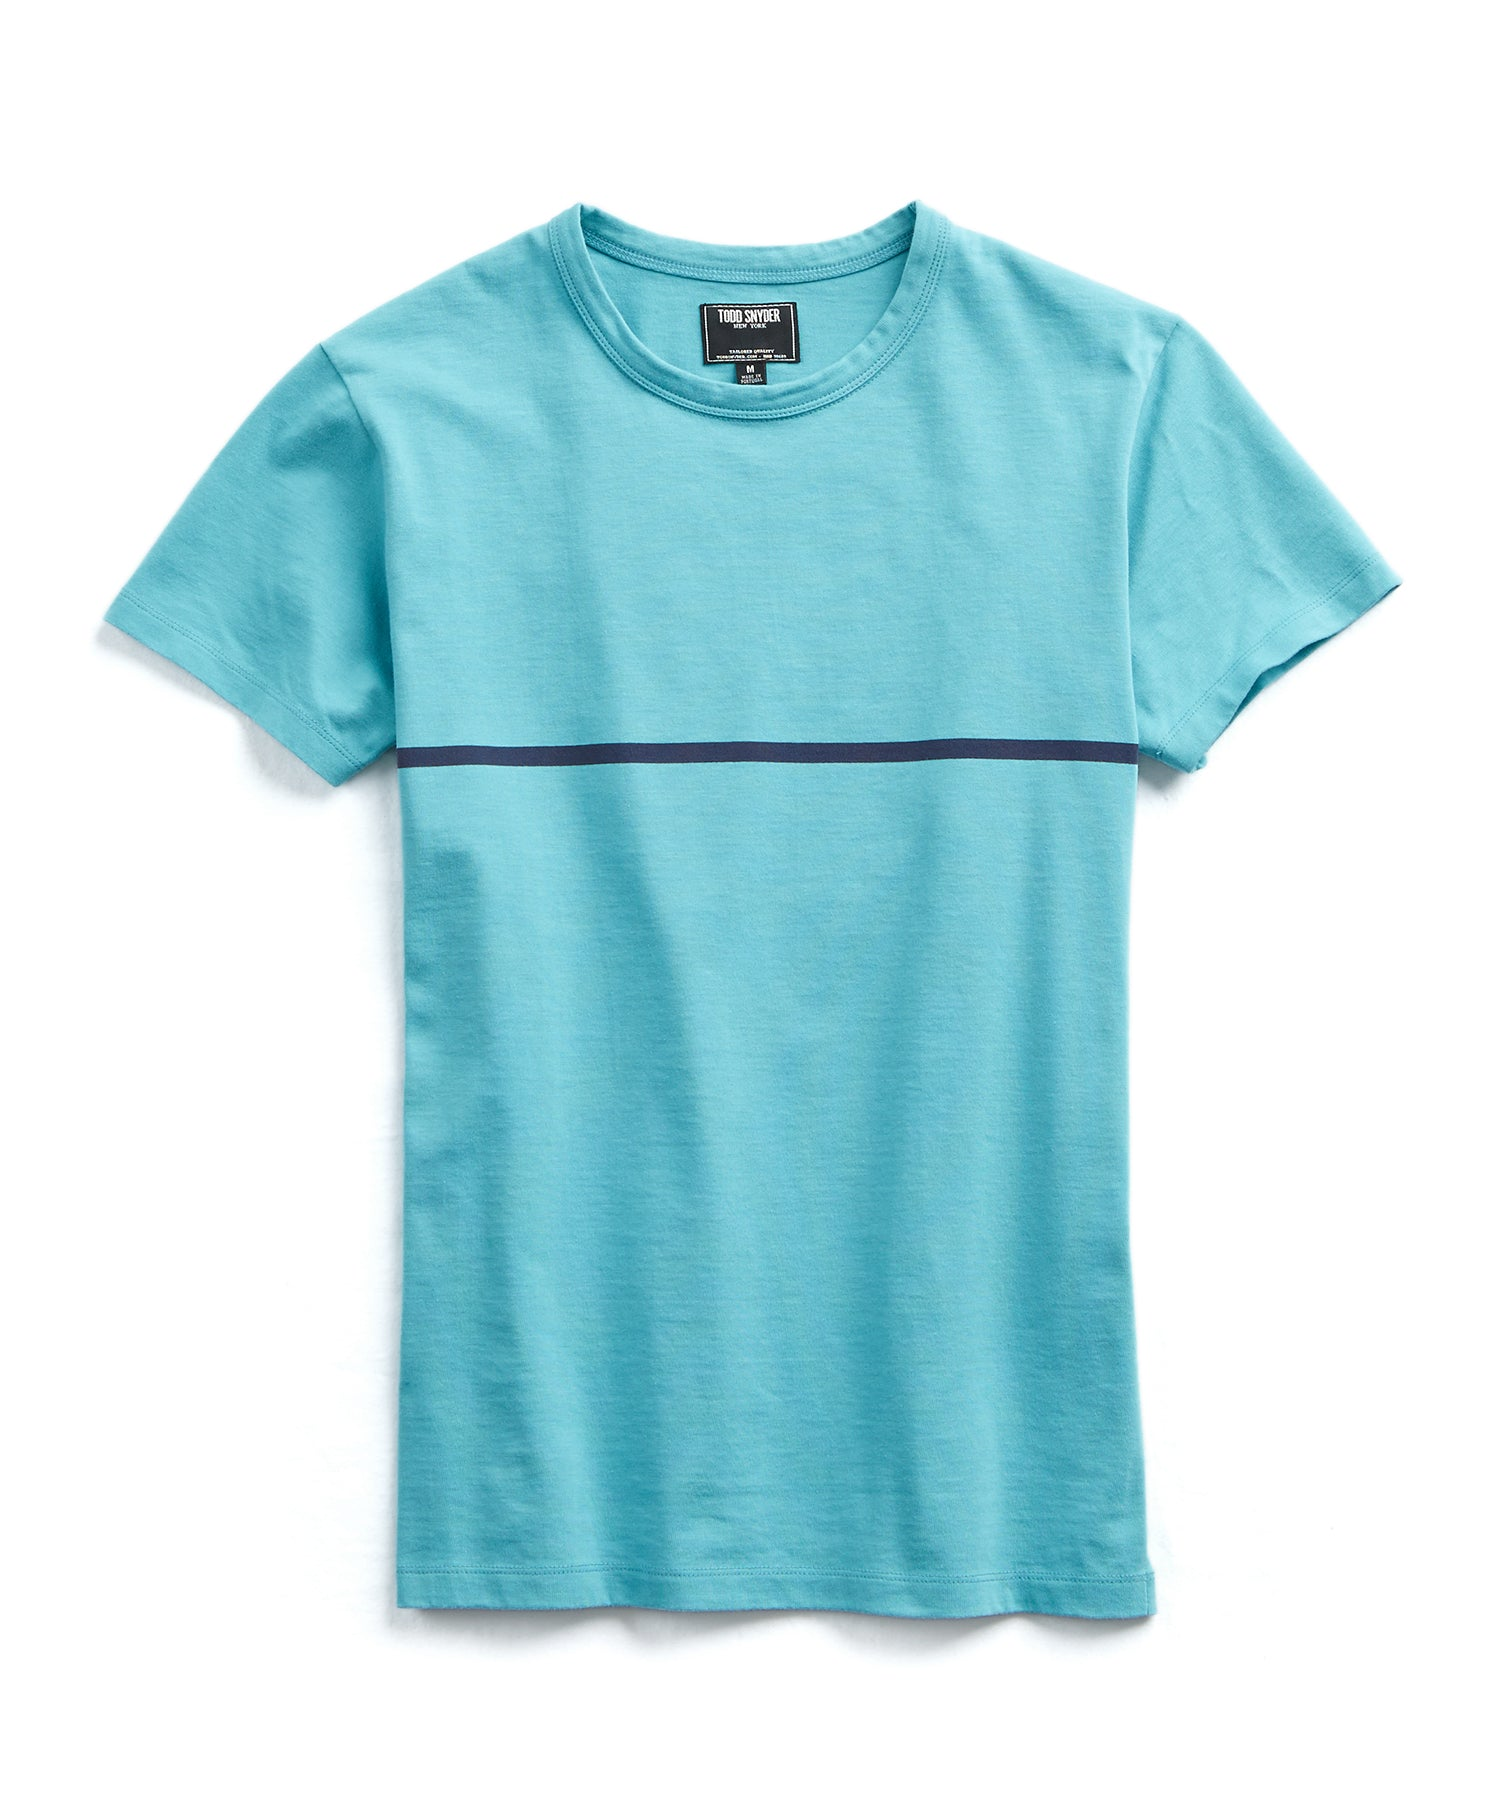 Aqua and Navy Stripe Tee